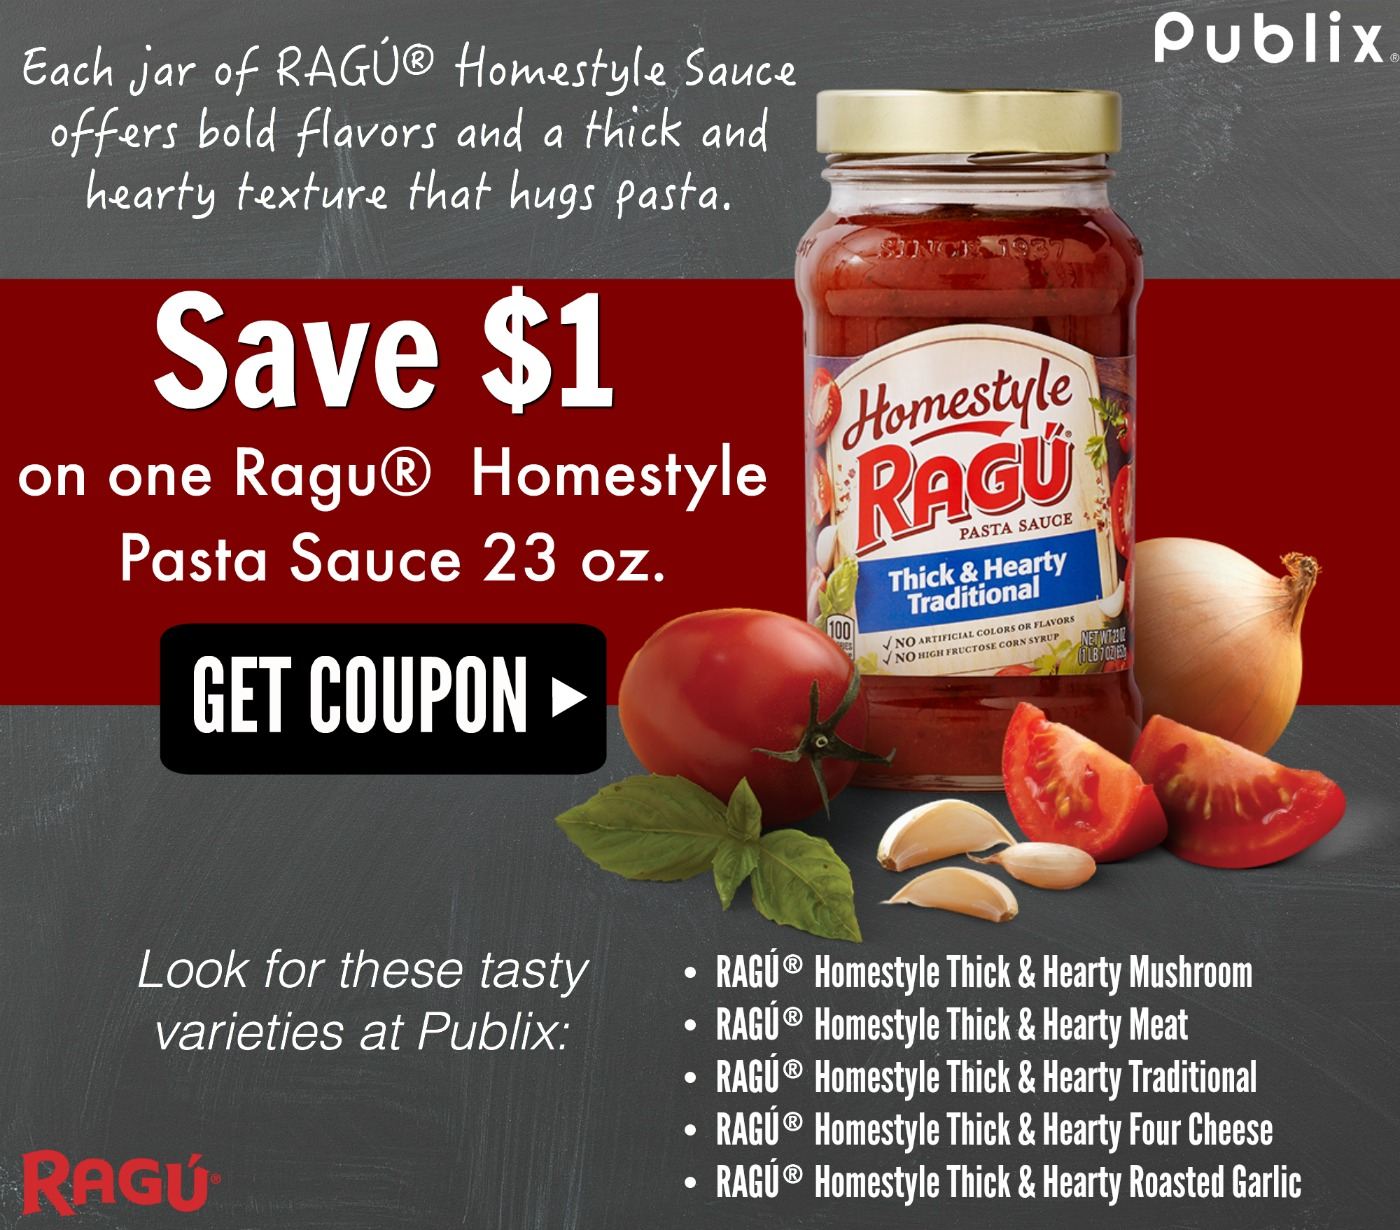 Learn more at iHeartPublix.com